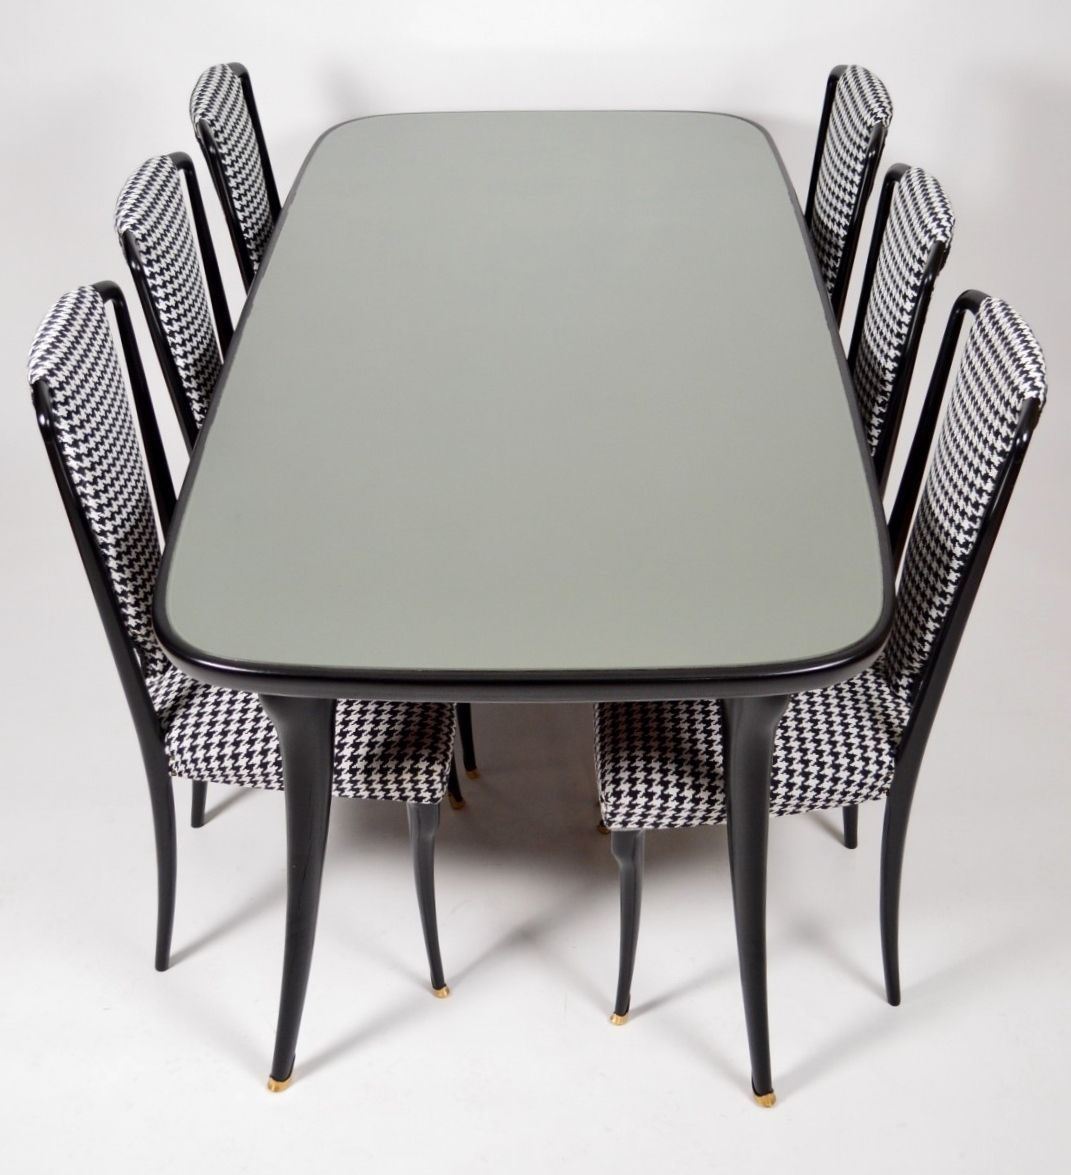 Italian Dining Set With 6 Chairs, 1950s